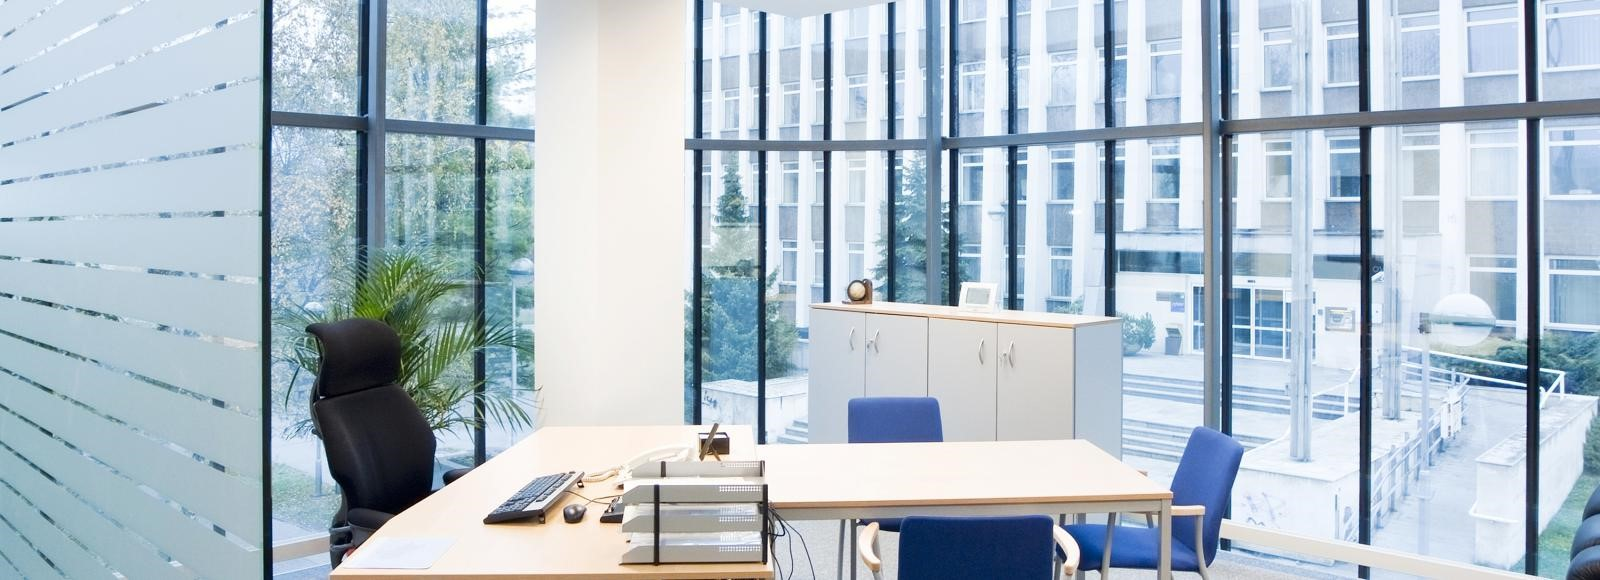 Window Tint for Your Office